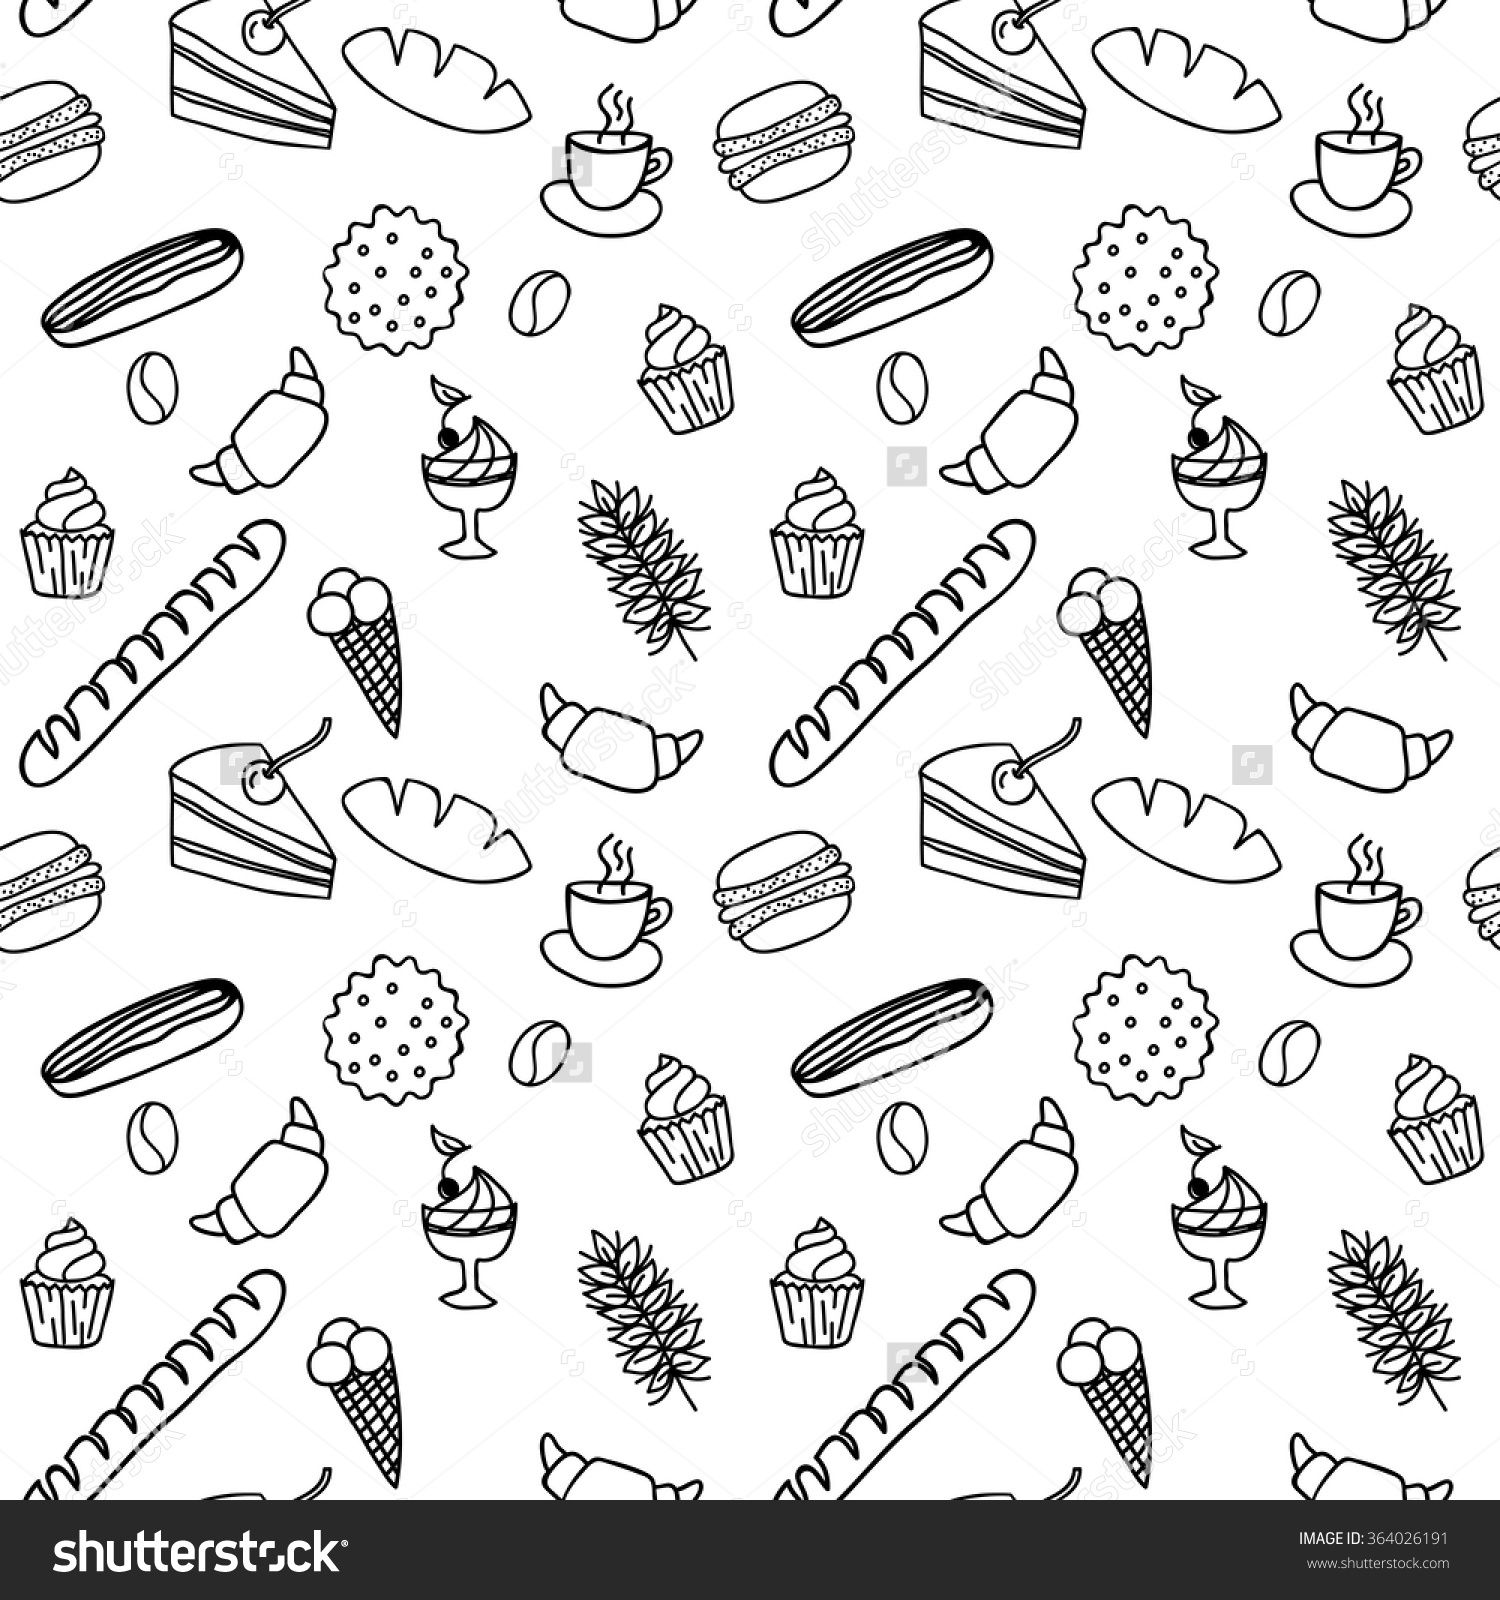 Hand Drawn Seamless Pattern For Adult Coloring Pages With Bread ...